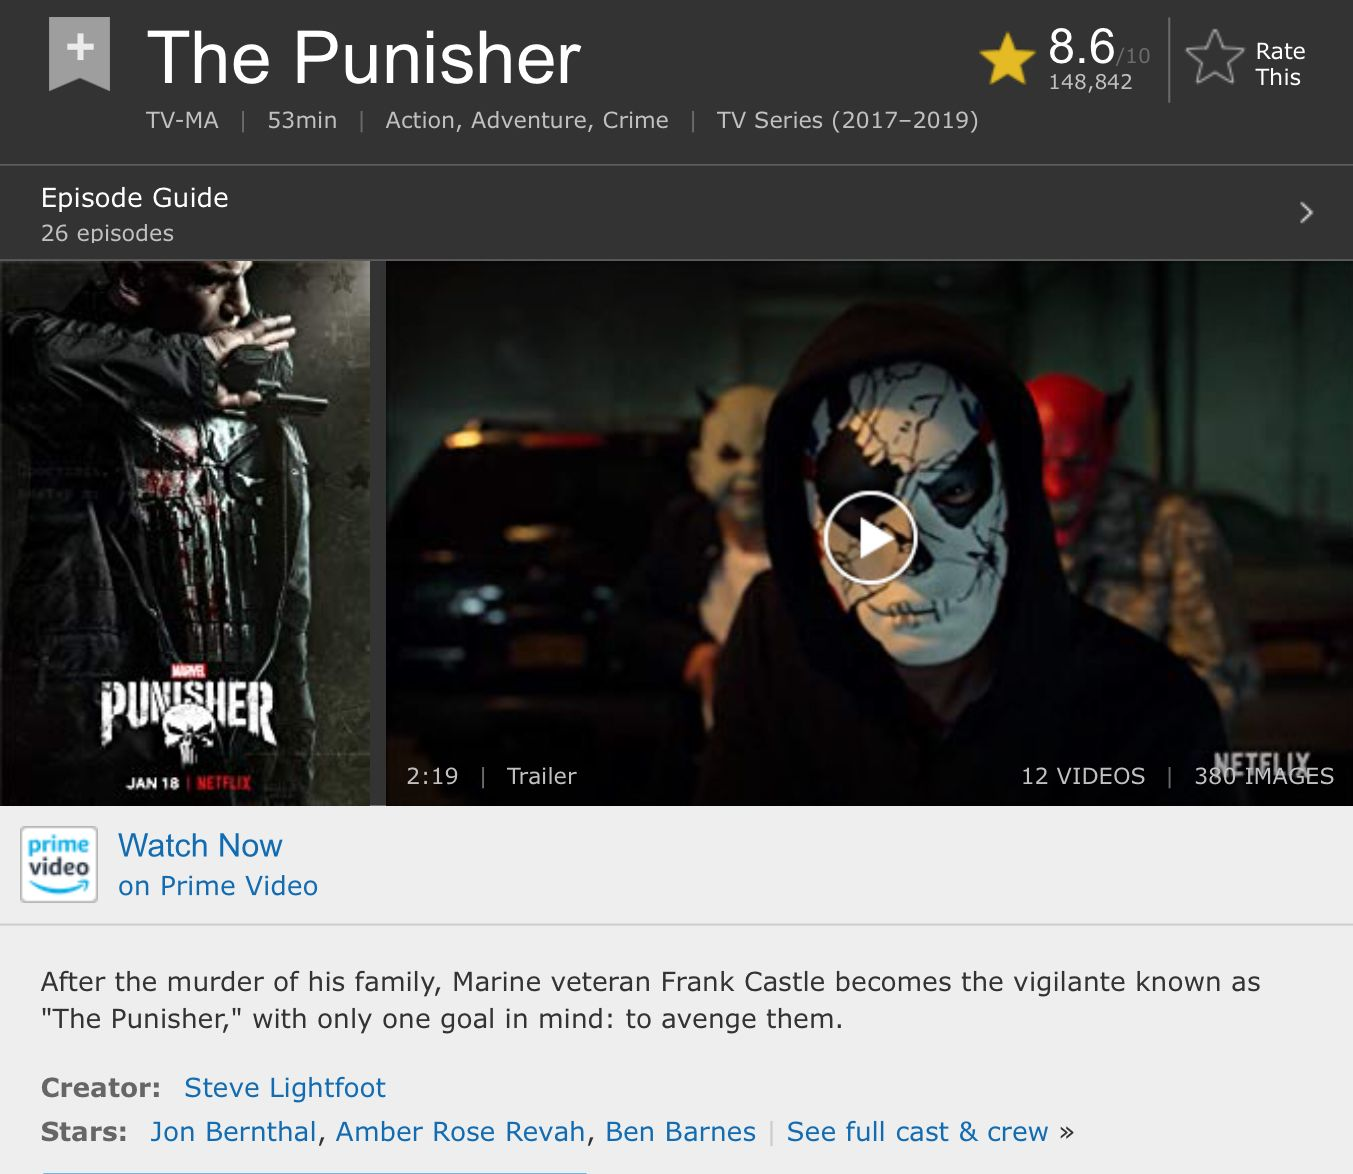 The Punisher Crime tv series, Tv series 2017, Marine veteran